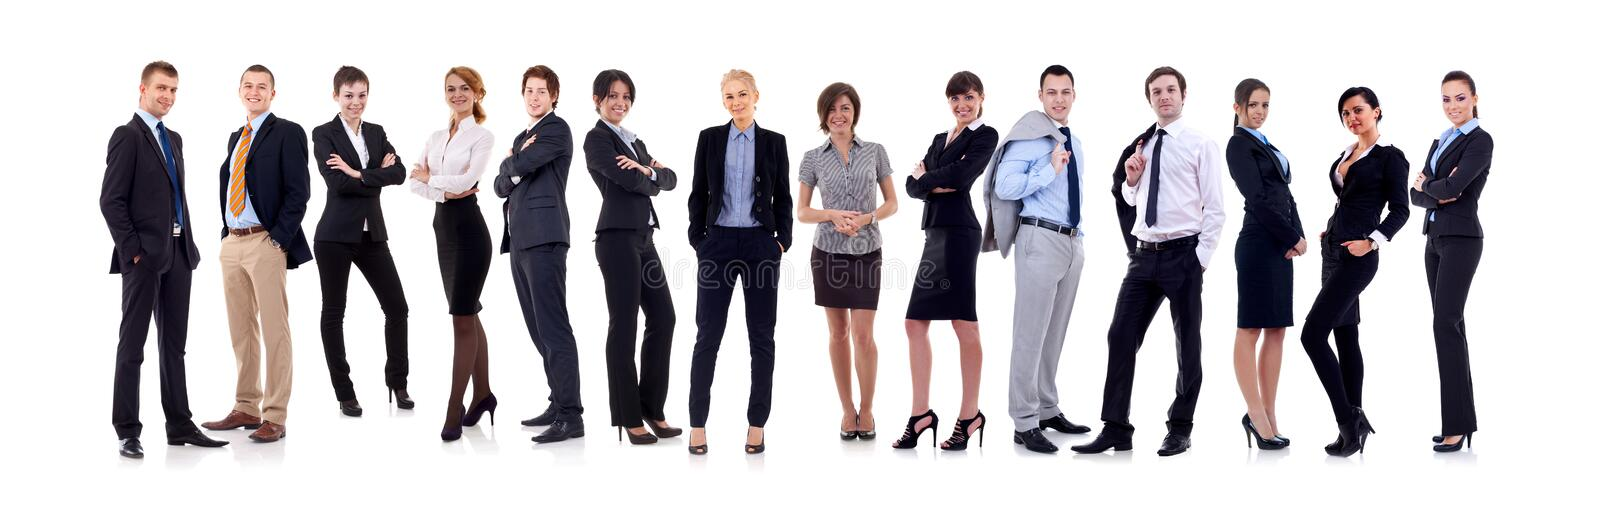 Download Business team stock image. Image of manager, career, commerce - 18411773